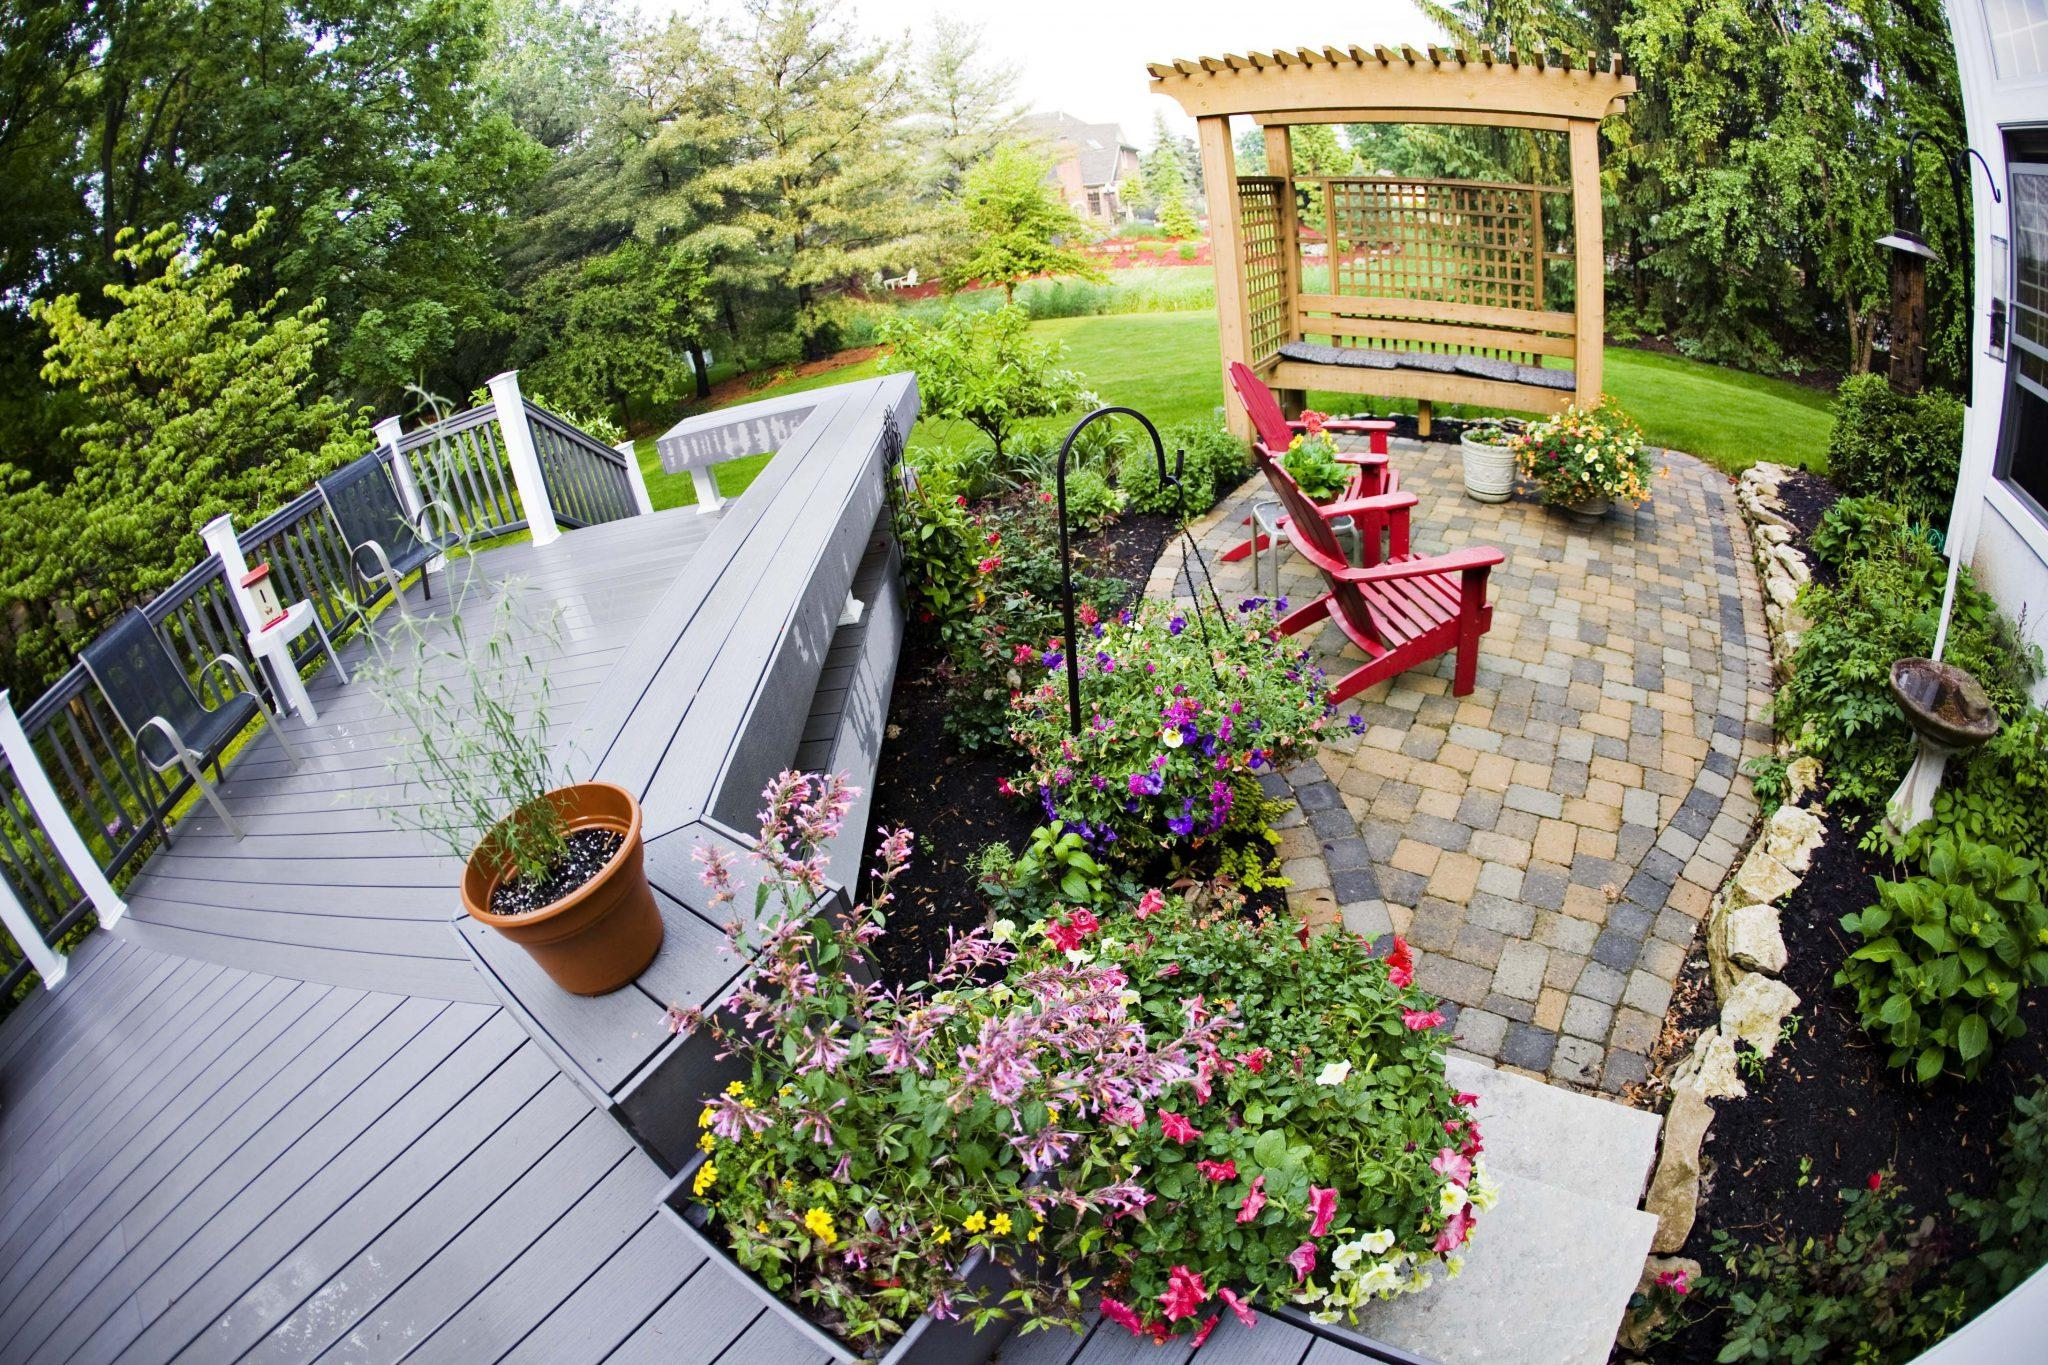 The perfect garden featuring beautiful planted flowers, wooden seat and an arbour